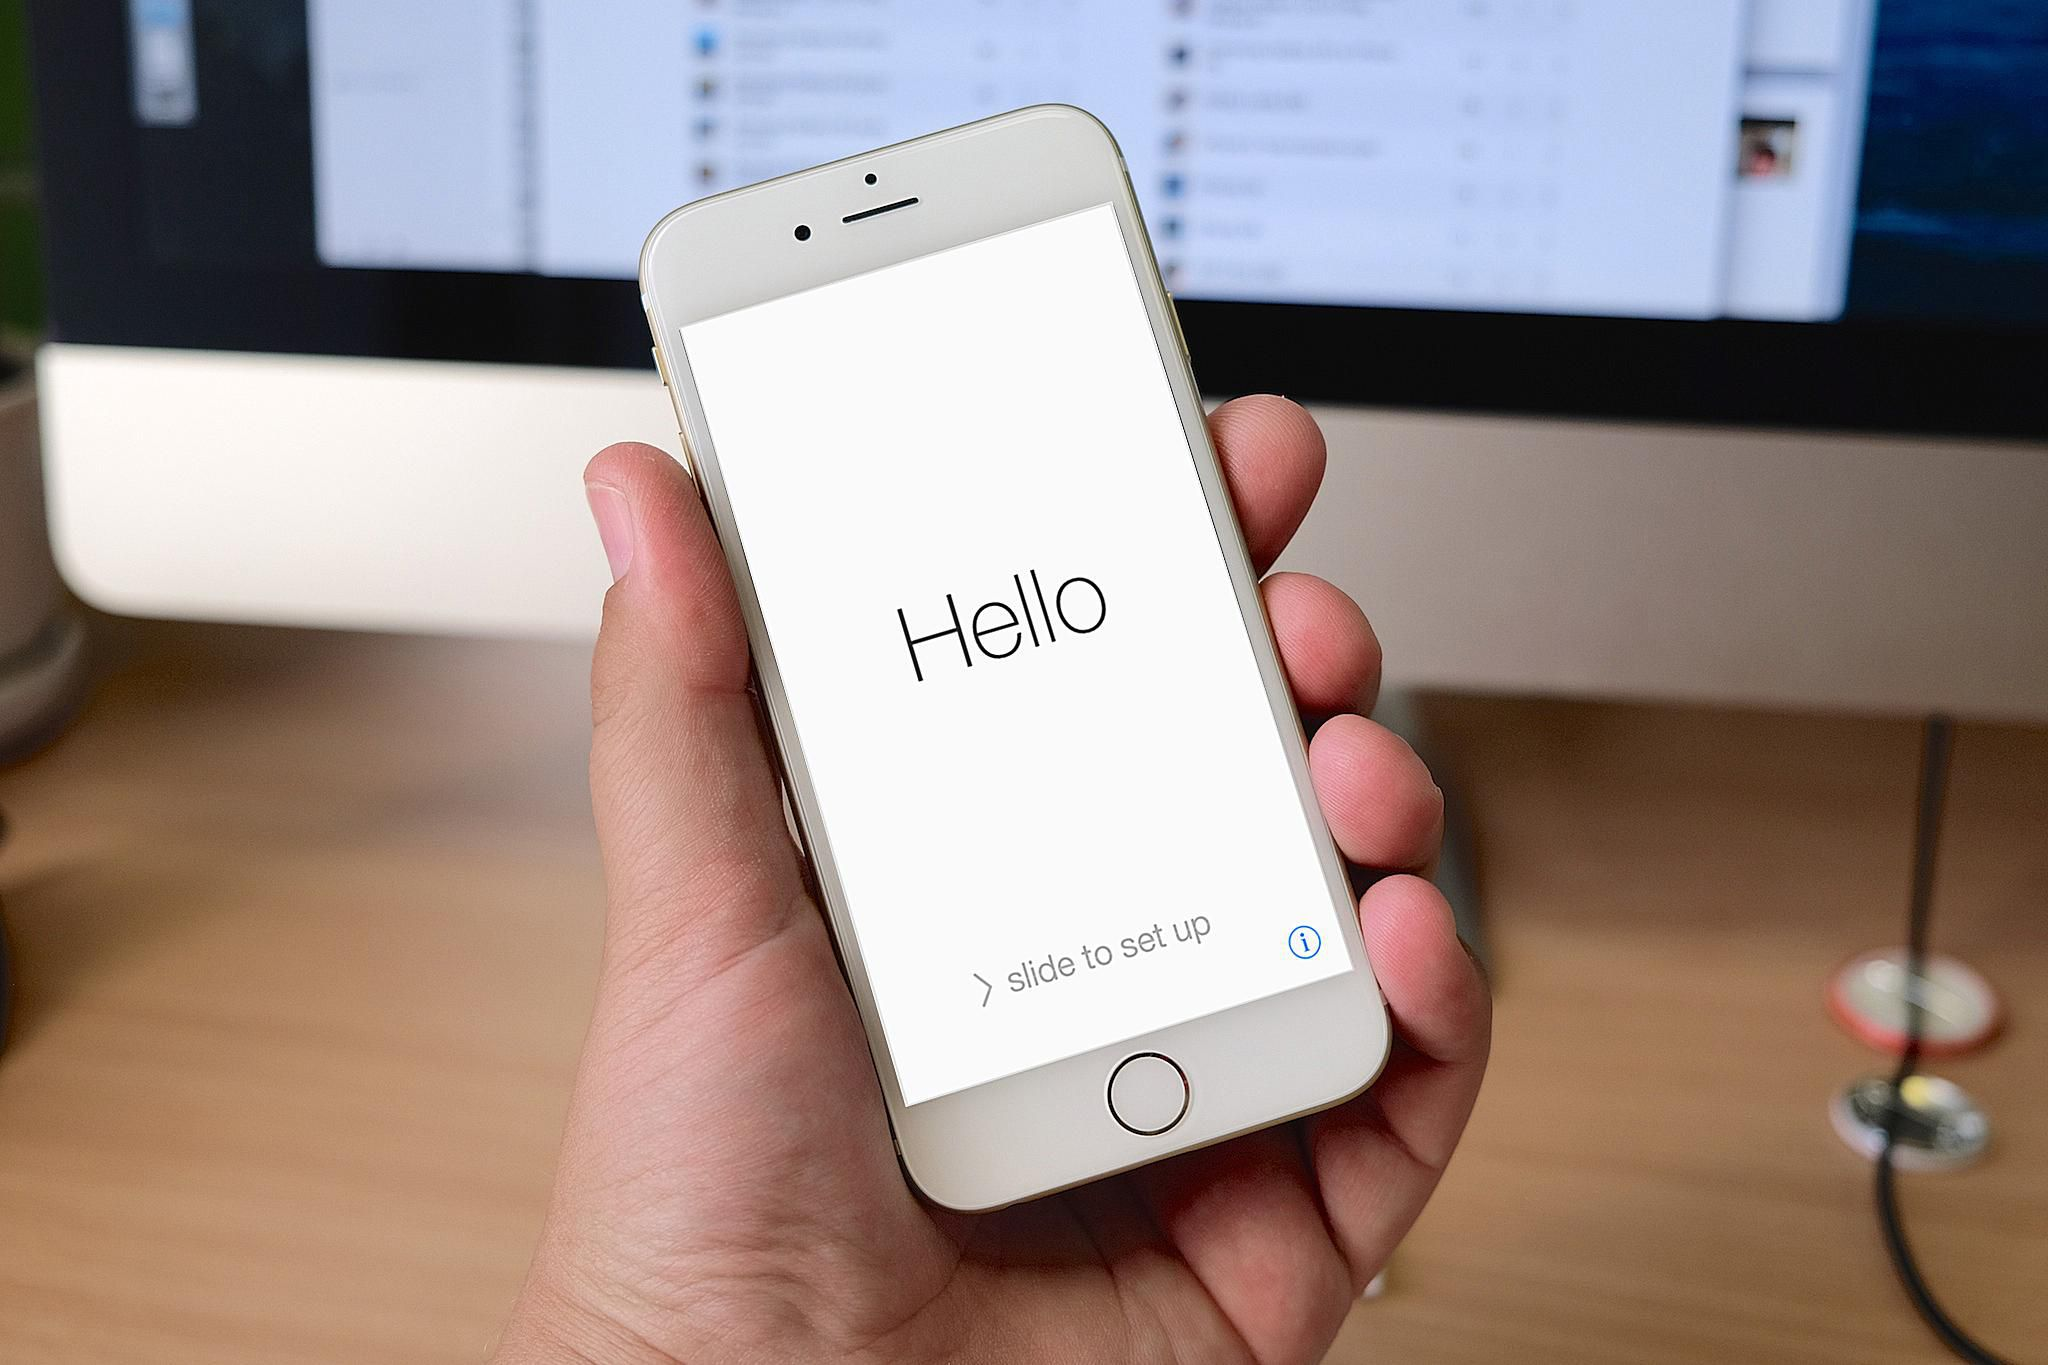 Ways to Fix Problems with the iPhone Remote App